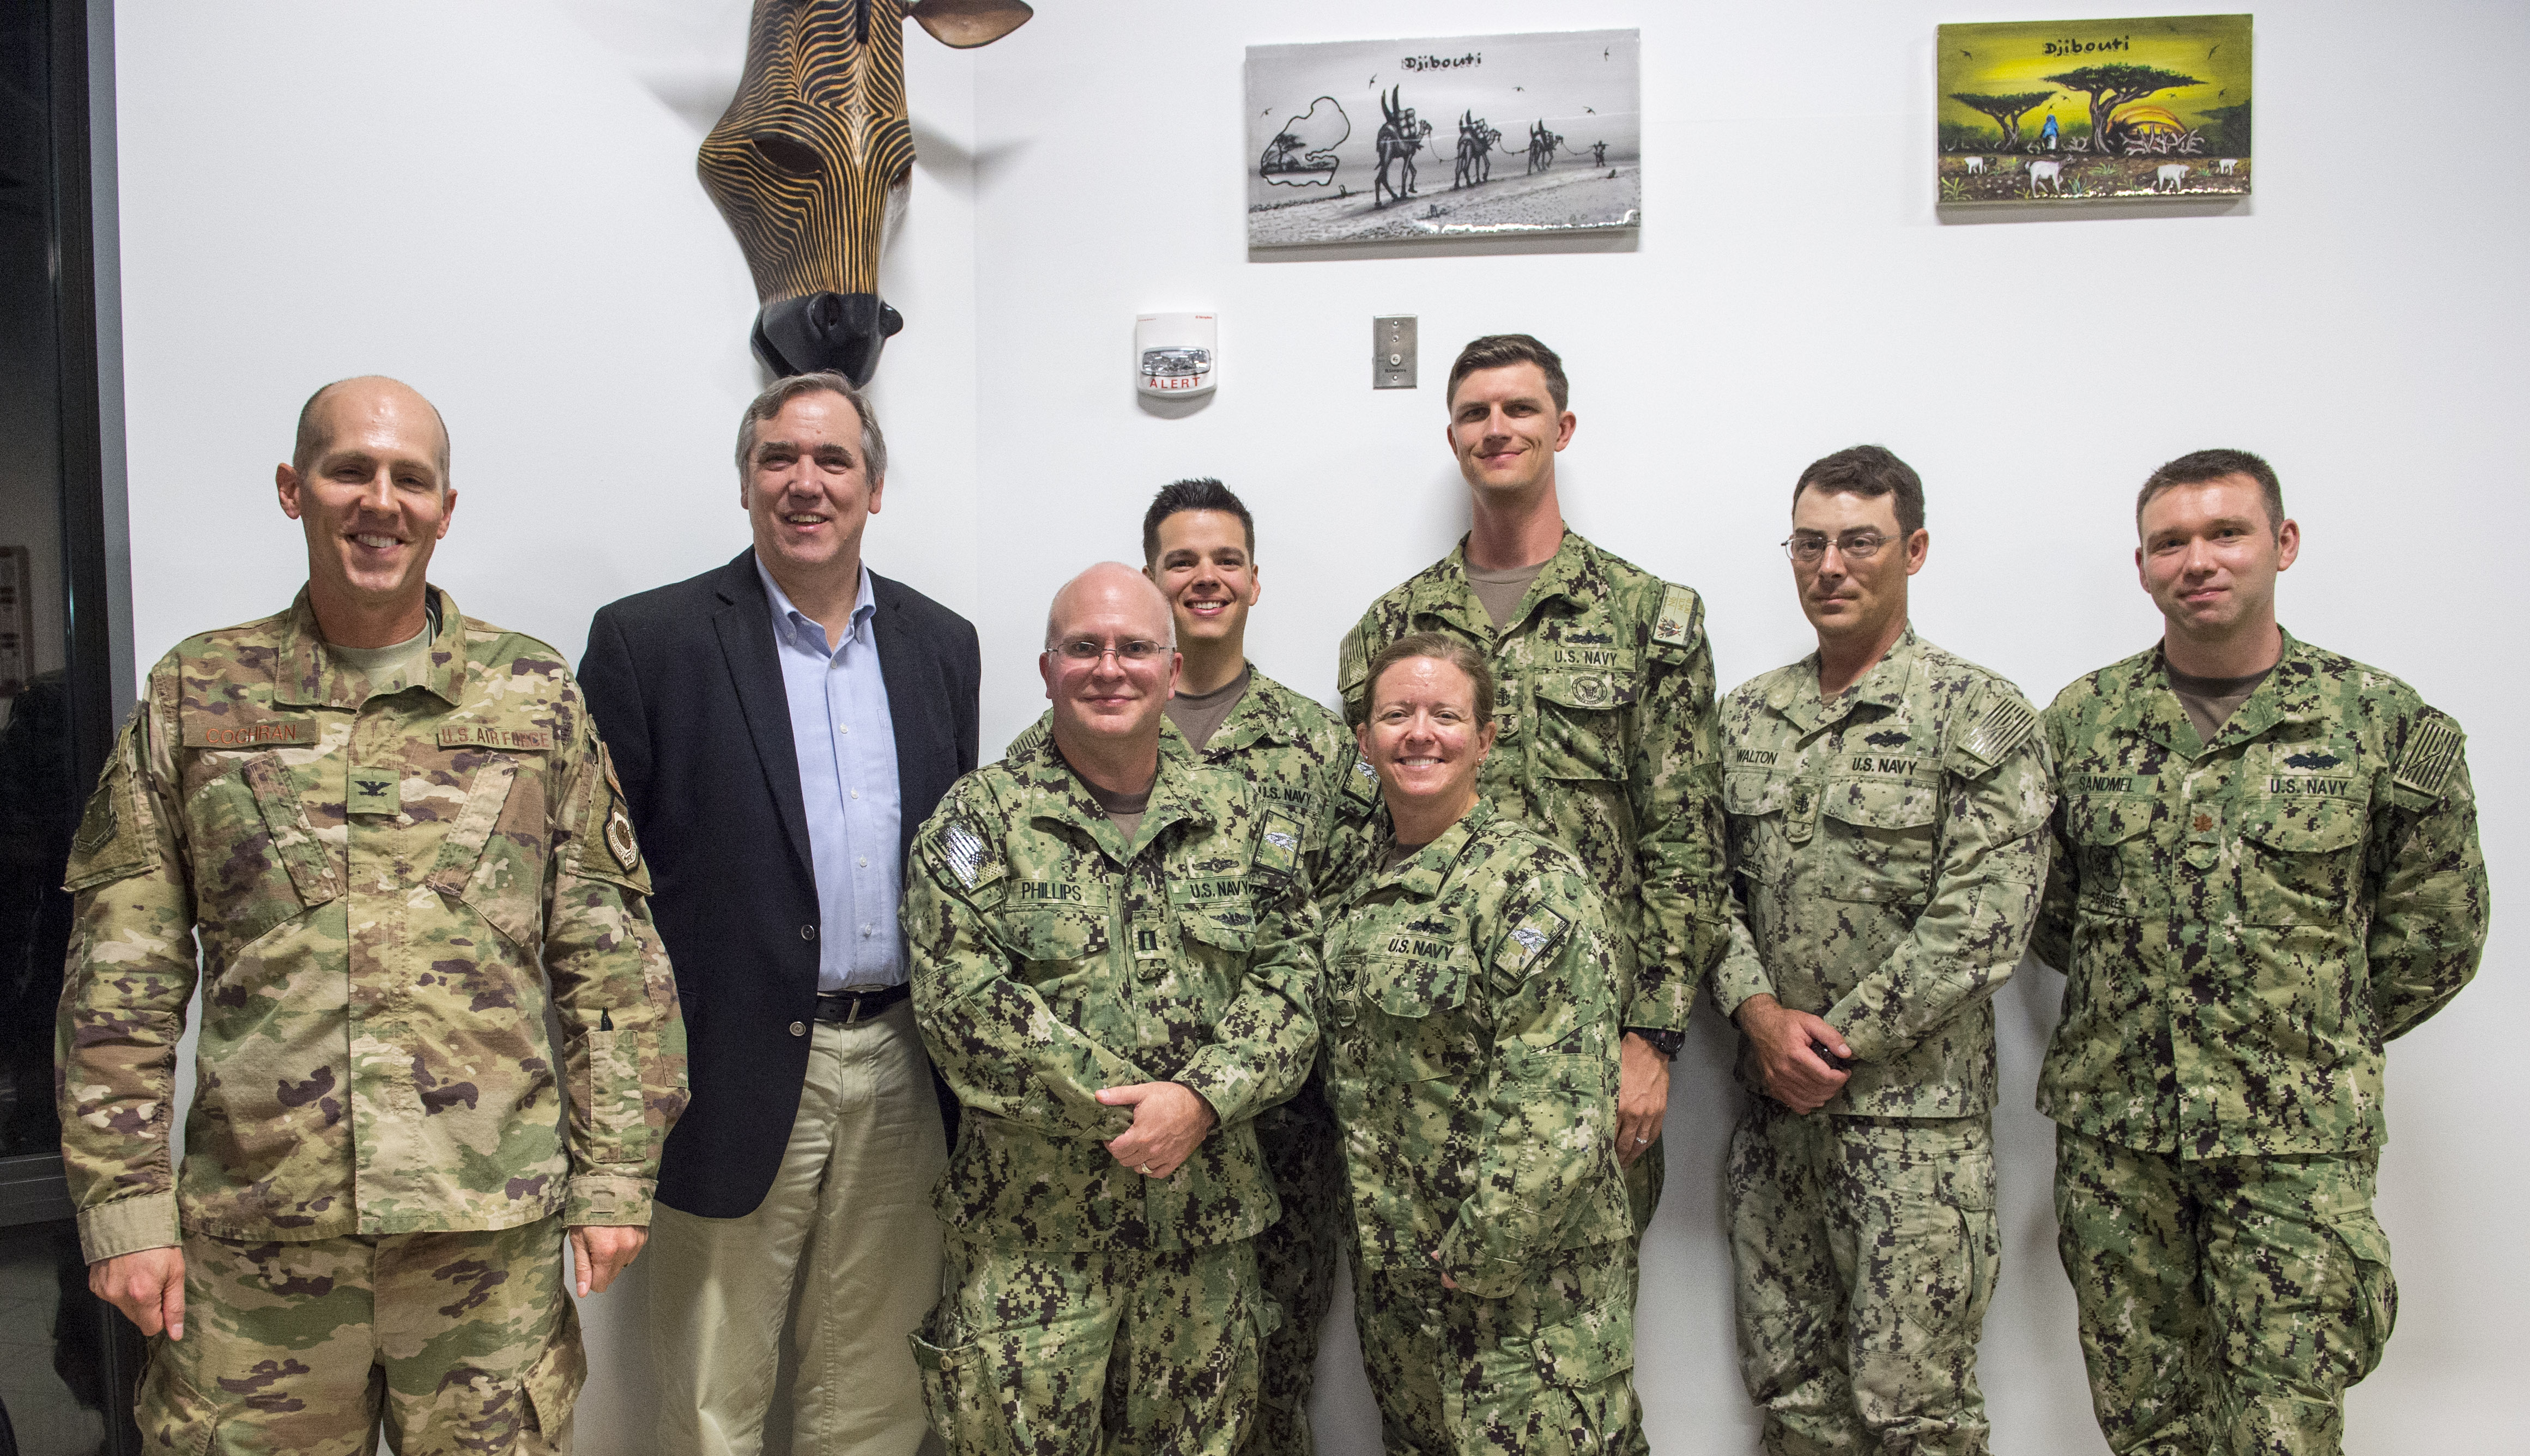 U.S. Sen. Jeff Merkley, Oregon, poses for a photo with service members deployed to Camp Lemonnier, Djibouti, during a visit to the Combined Joint Task Force - Horn of Africa (CJTF-HOA) March 26, 2018. Merkley visited with service members at Camp Lemonnier before continuing his trip to other locations in East Africa. As a member of the U.S. Senate Foreign Relations Committee, Merkley's visit focused on the critical role that U.S. assistance plays as he examined famine-like conditions, severe food shortages, internally displaced persons and refugees in each location and how these factors affect counter-terrorism efforts within the CTJF-HOA area of responsibility. (U.S. Air Force photo by Staff Sgt. Timothy Moore)